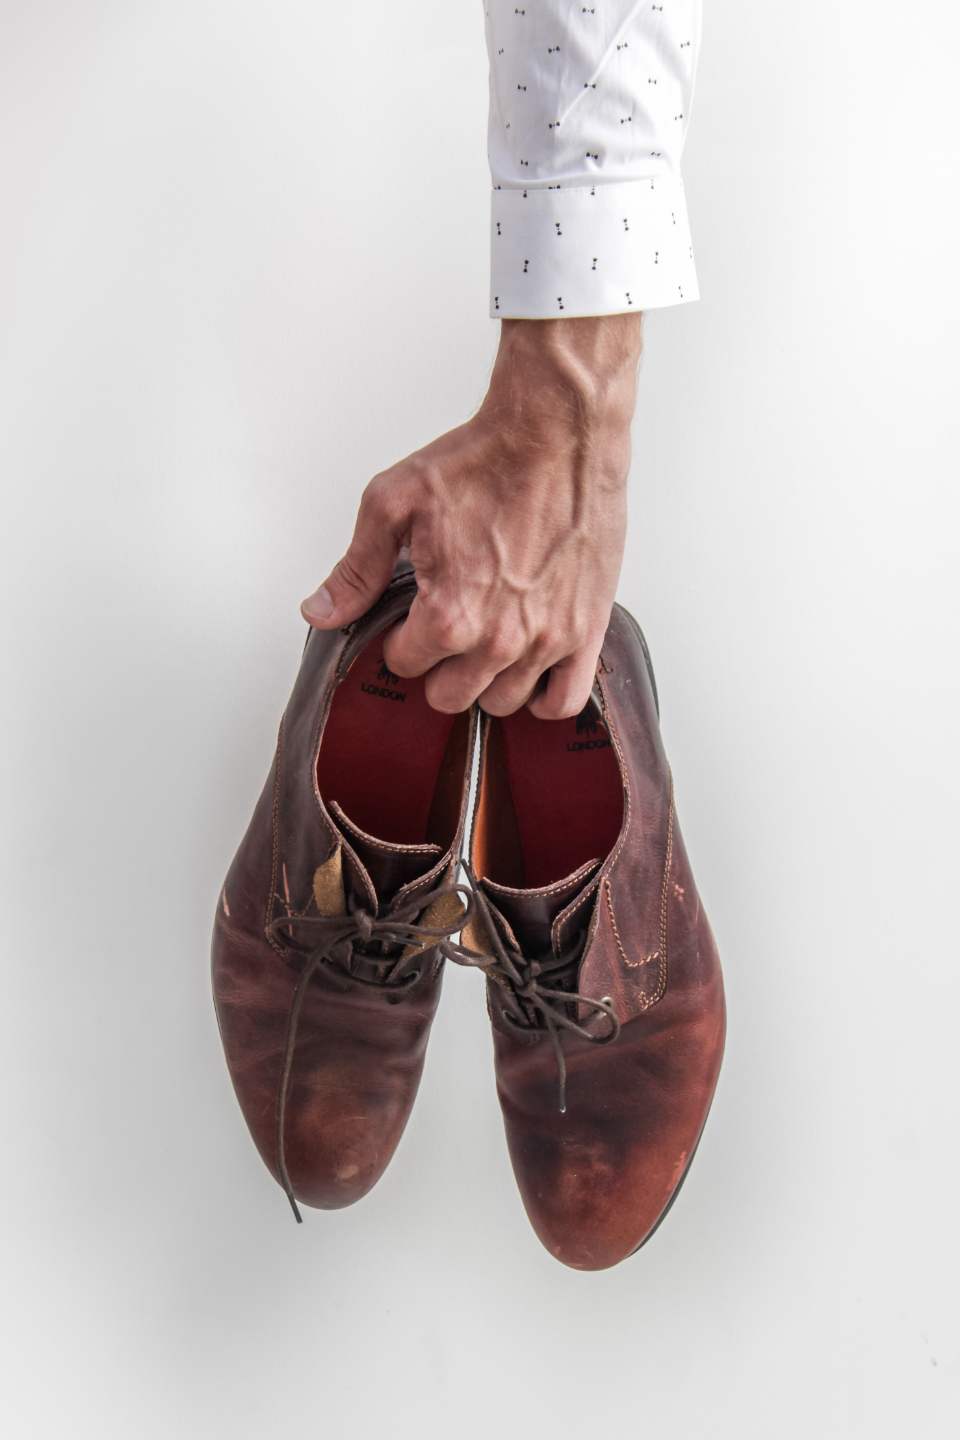 man holding shoes classy dress shoes adult fashion shopping arm isolated businessman classic close detail elegant objects retro shop